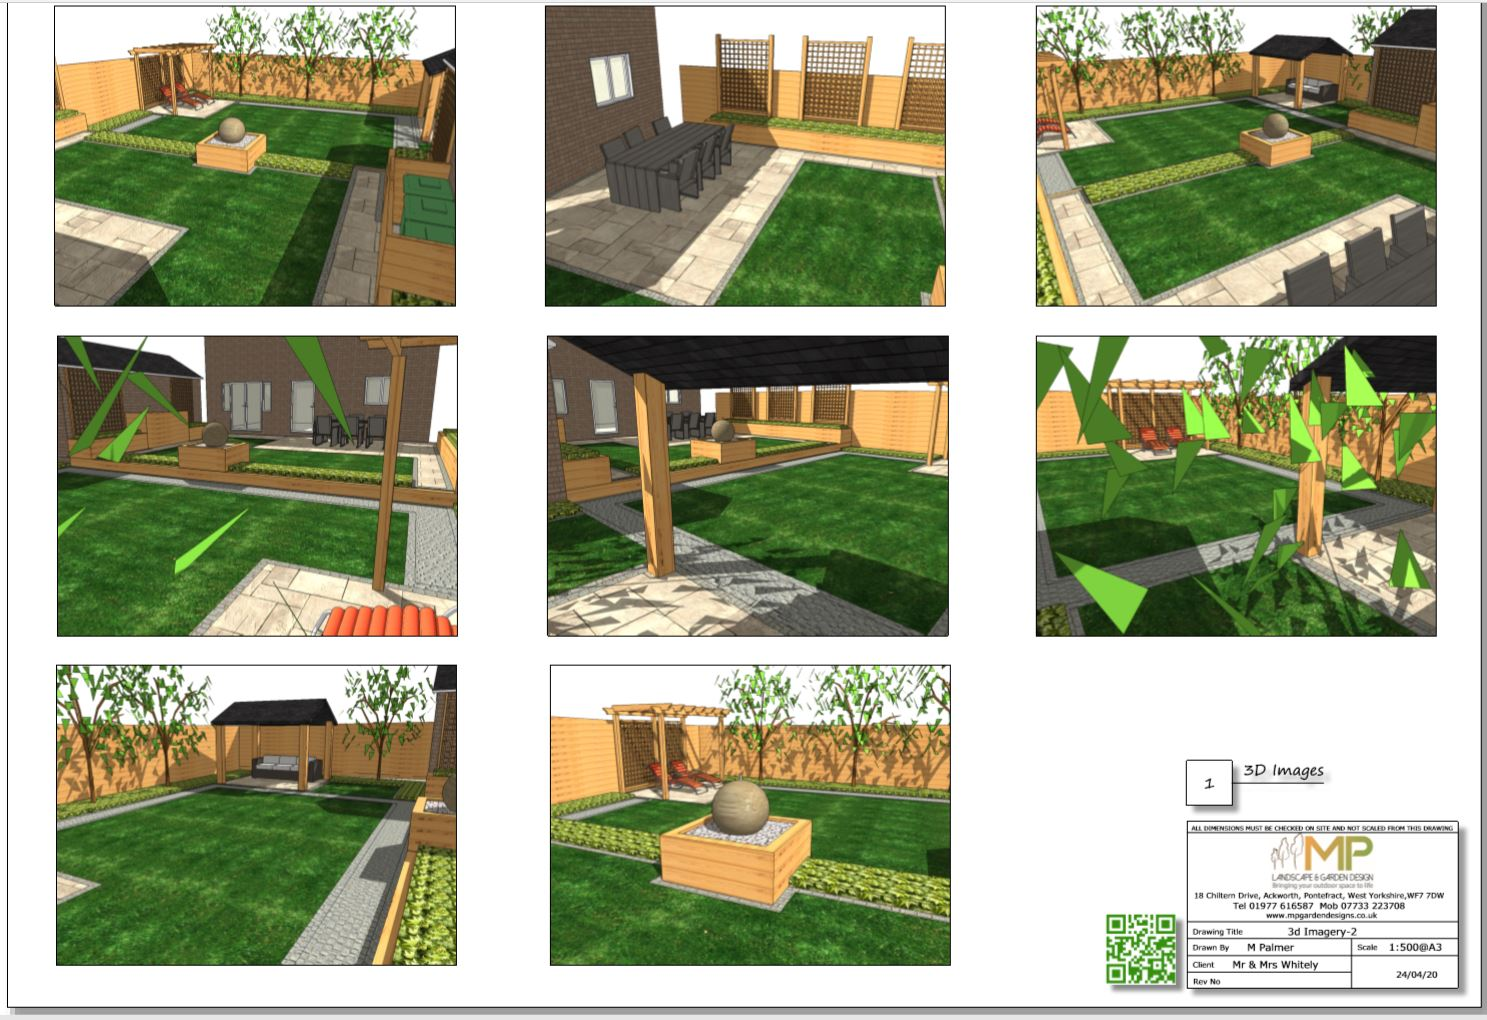 8, Concept plan-2, 3D images for a rear garden in Pontefract